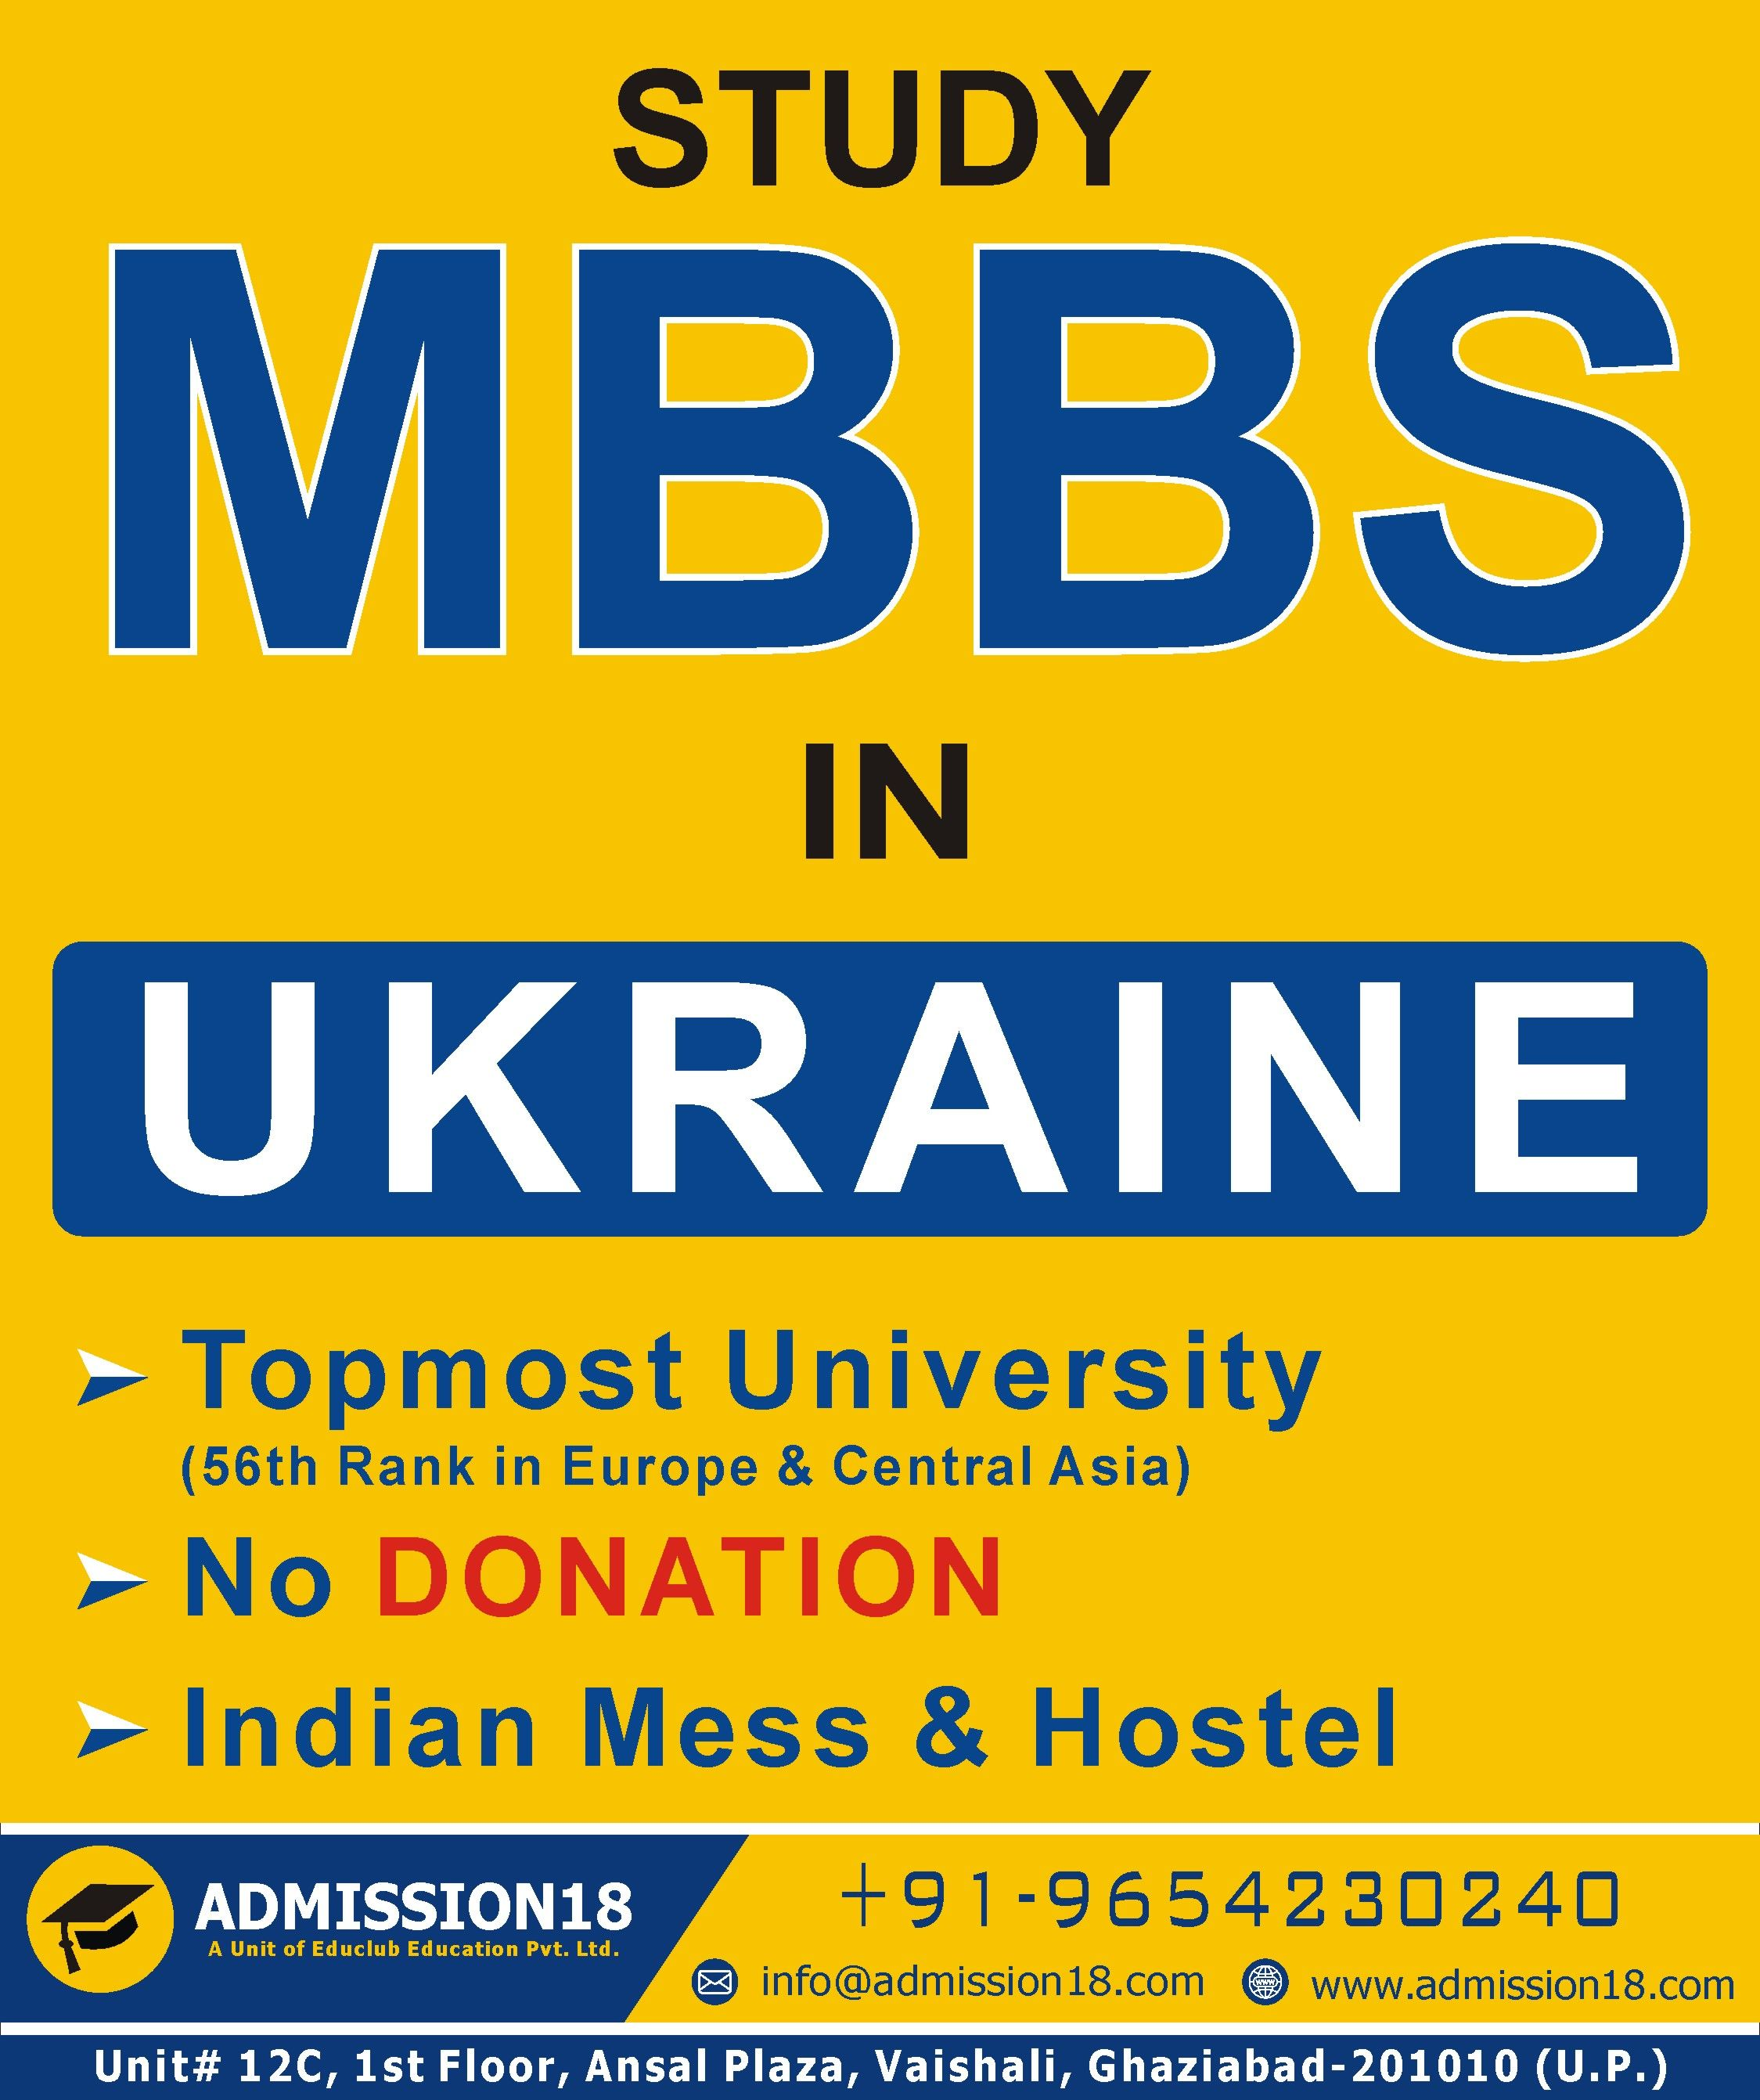 MBBS Study Abroad Indian Cost. Ukraine, Russia